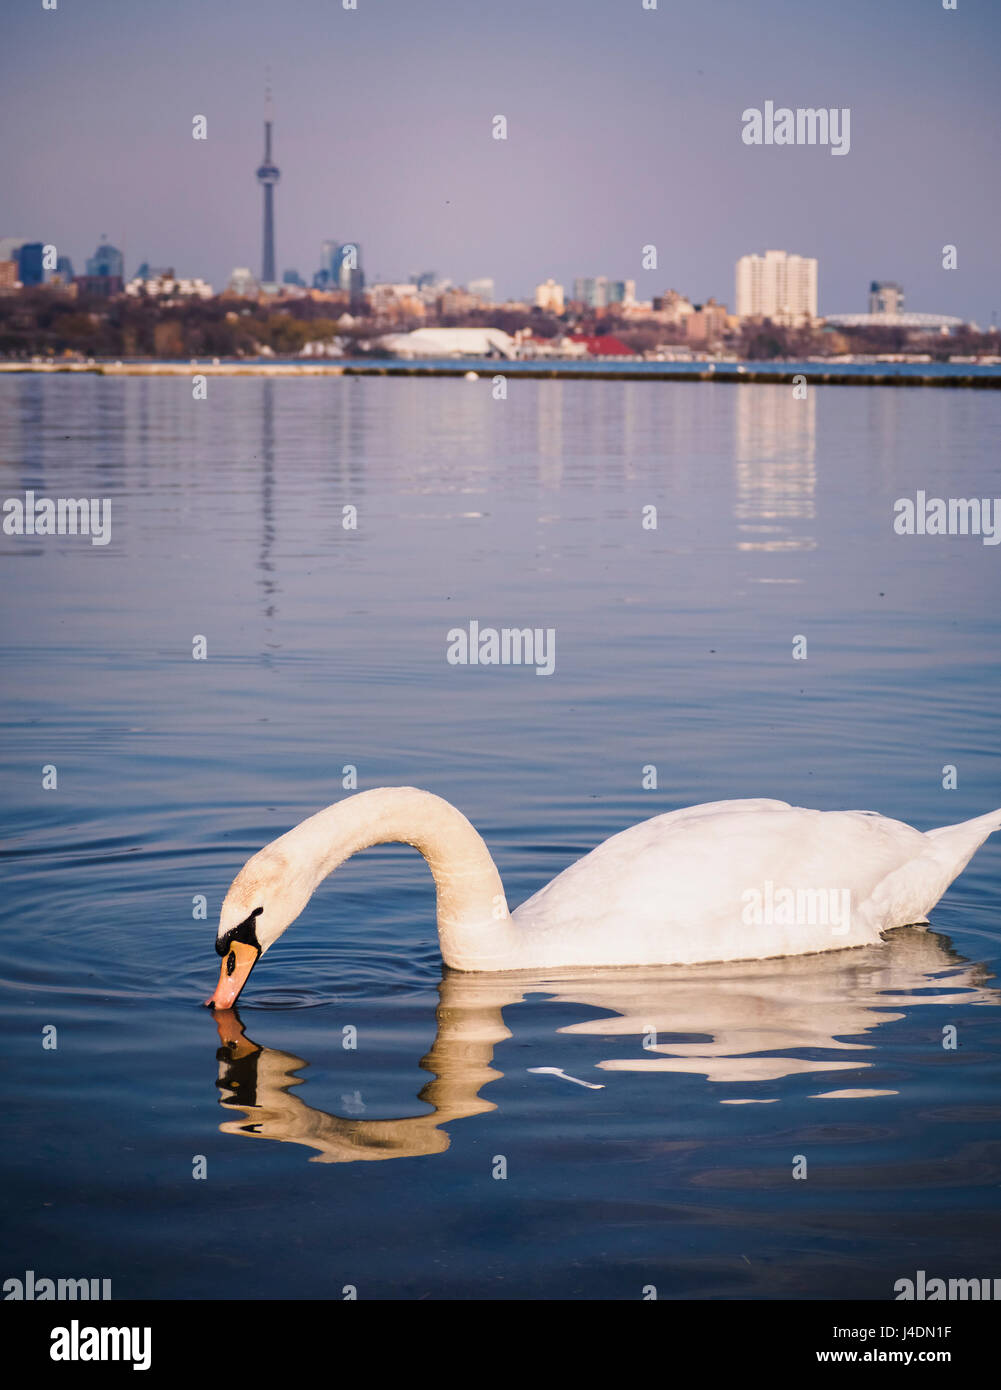 Trumpeter swan in Lake Ontario in front of Toronto Skyline. Trumpeter swan was almost extinct as the last one was - Stock Image